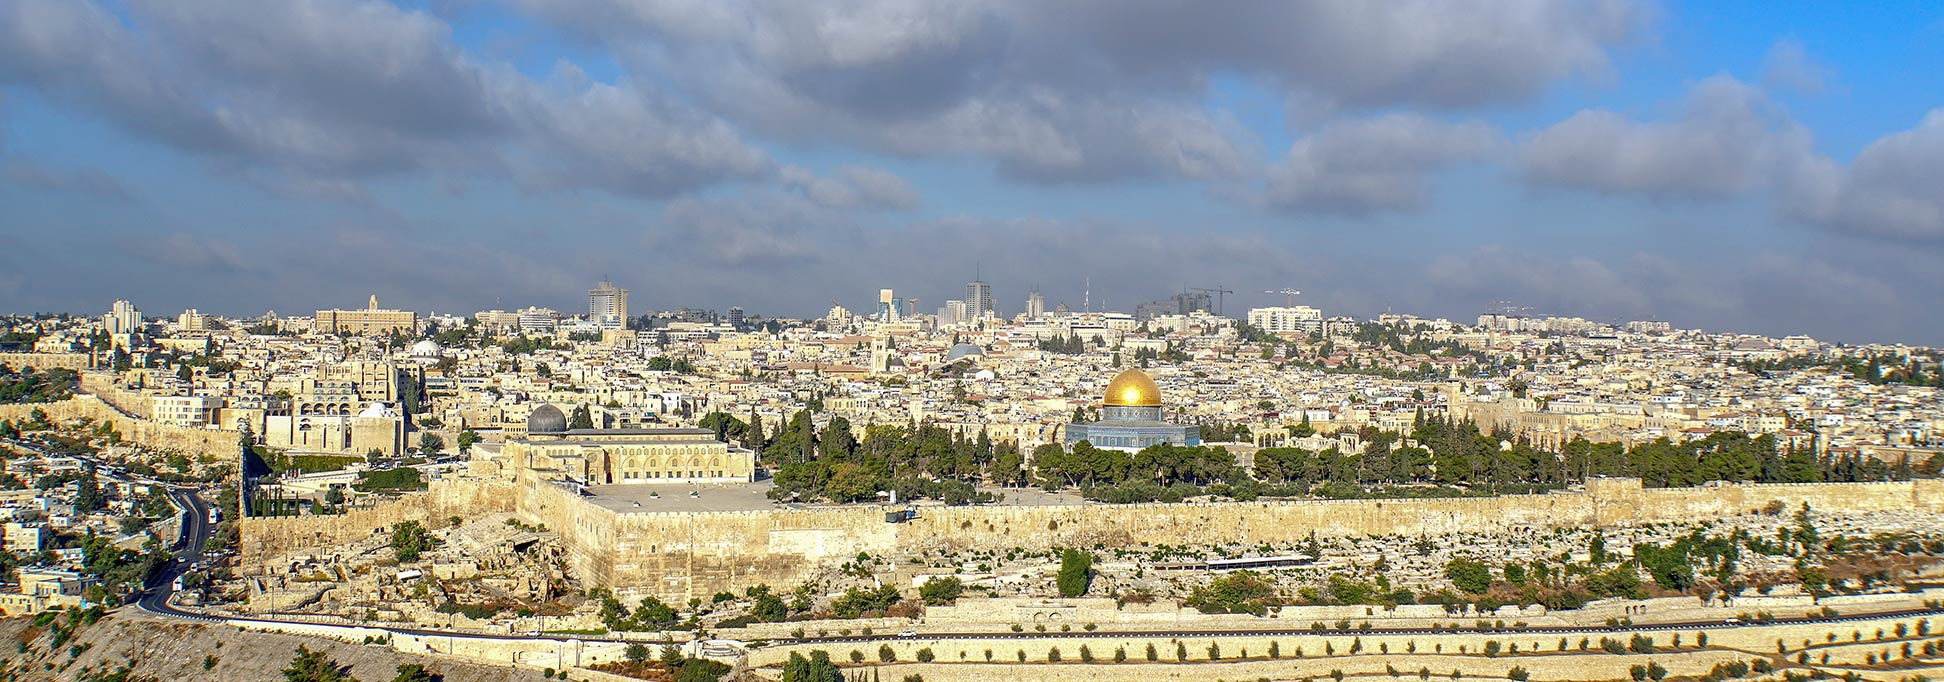 Panorama of the Old City of Jerusalem with the Dome of the Rock, Israel